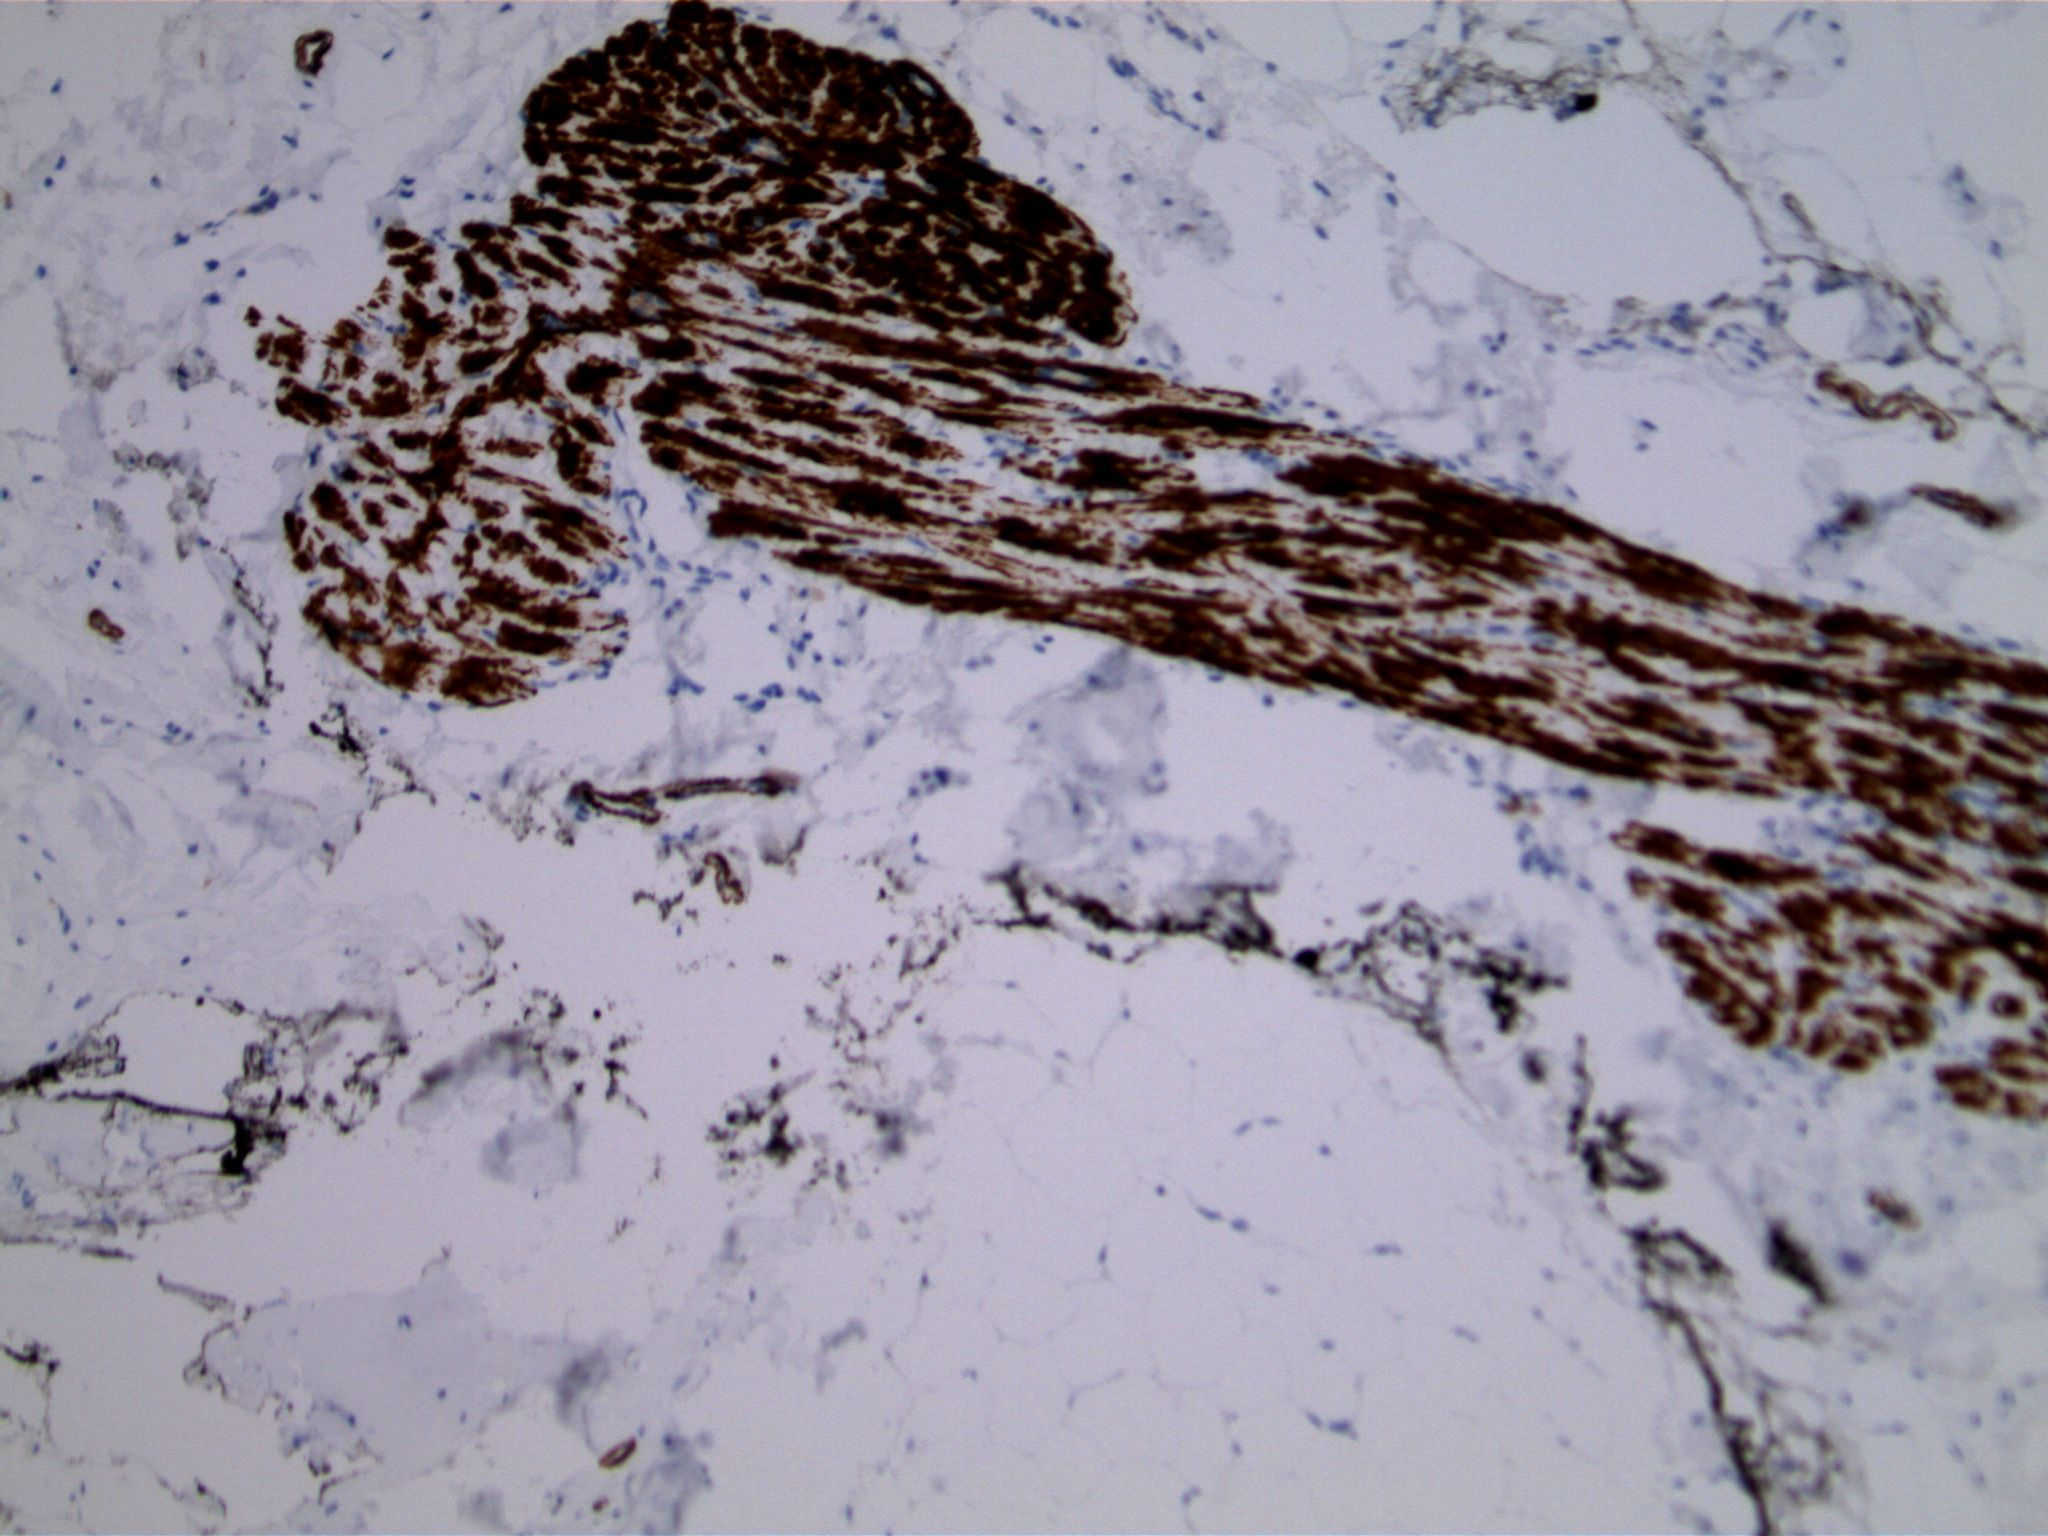 Image 5.  Immunohistochemistry using antibodies to smooth muscle actin highlights prominent myoid component in a longitudinally cut terminal duct.